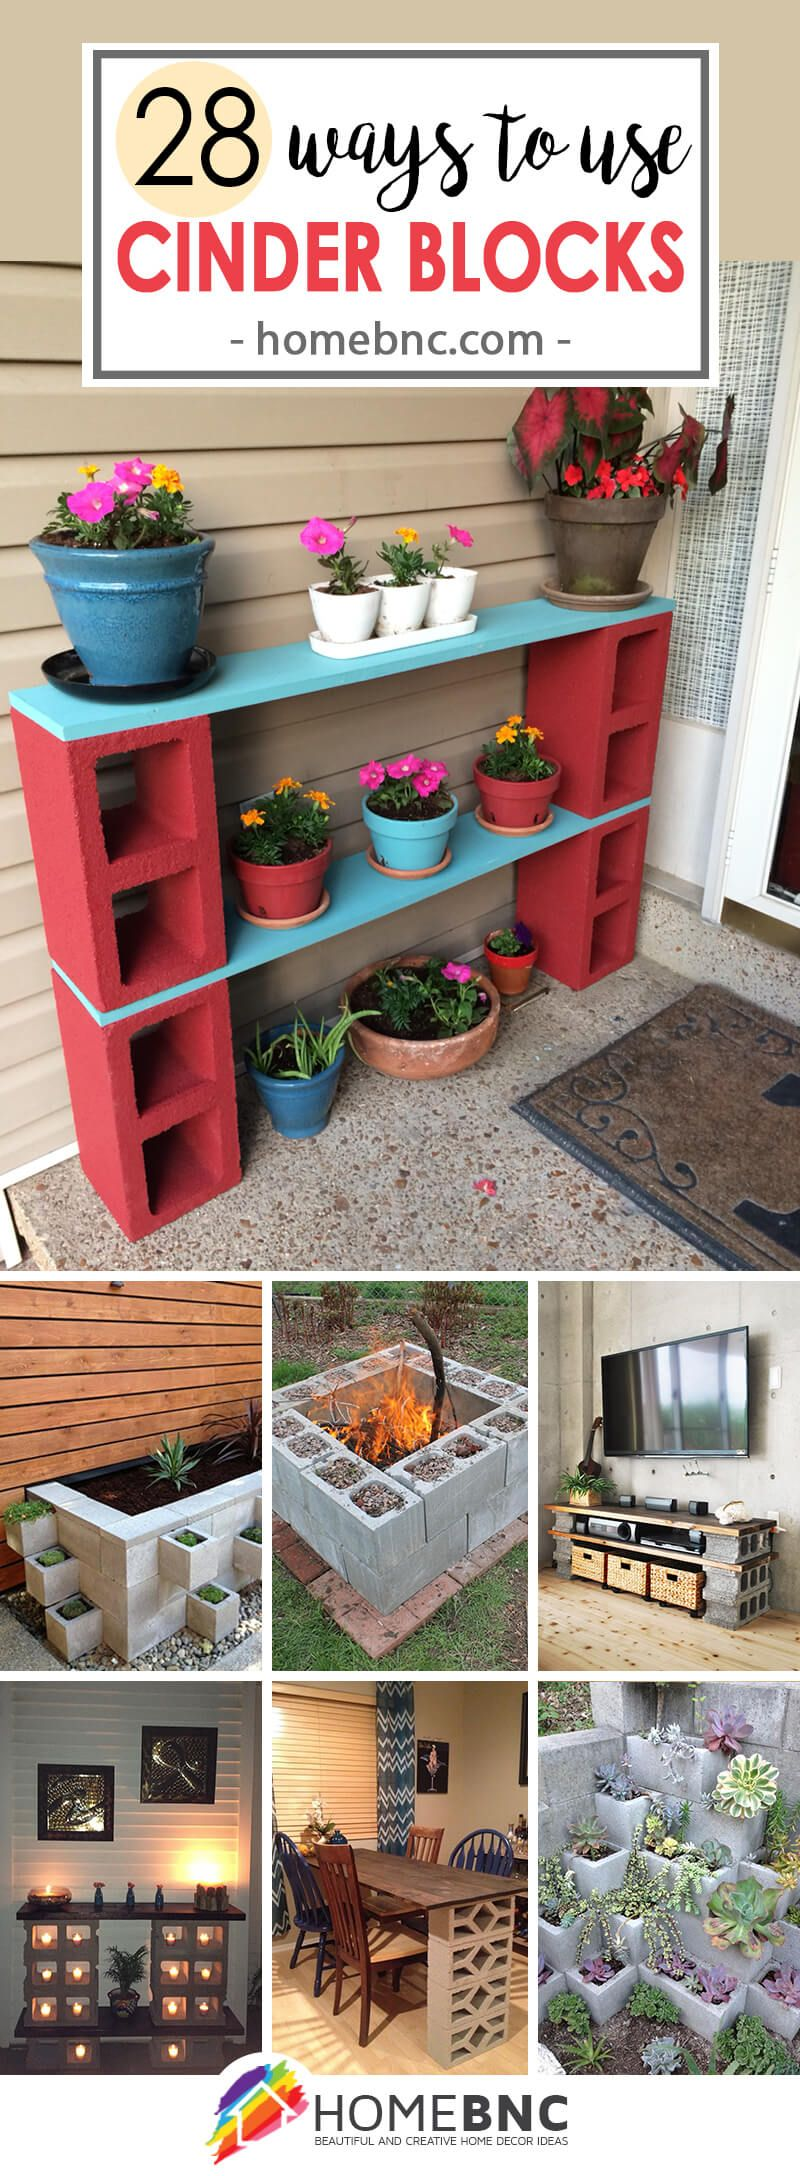 Cinder Block Using Decor Ideas